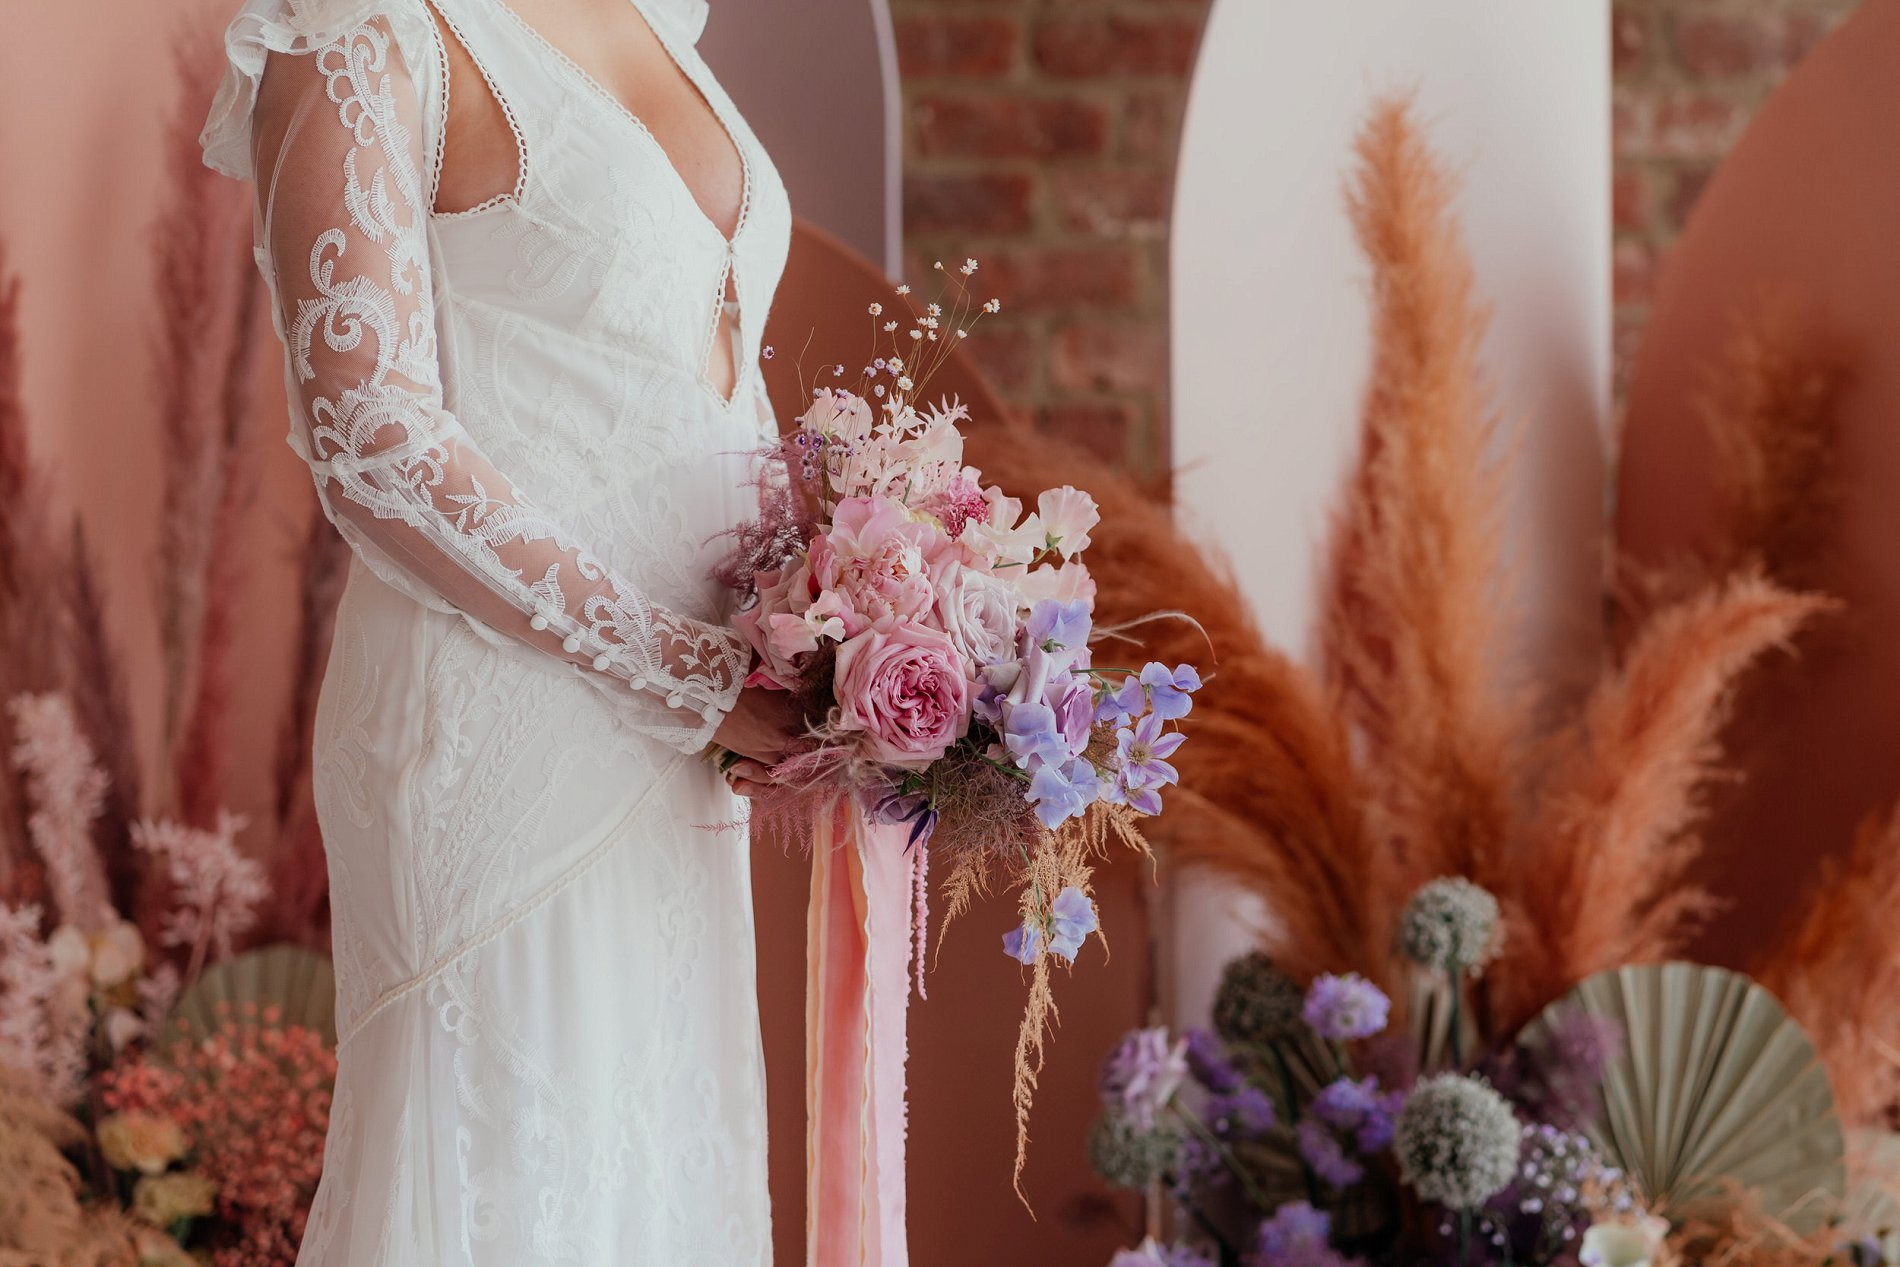 Romantic Boho Wedding Shoot at The Barn In Willerby Hill (c) Rosanna Lilly Photography (1)